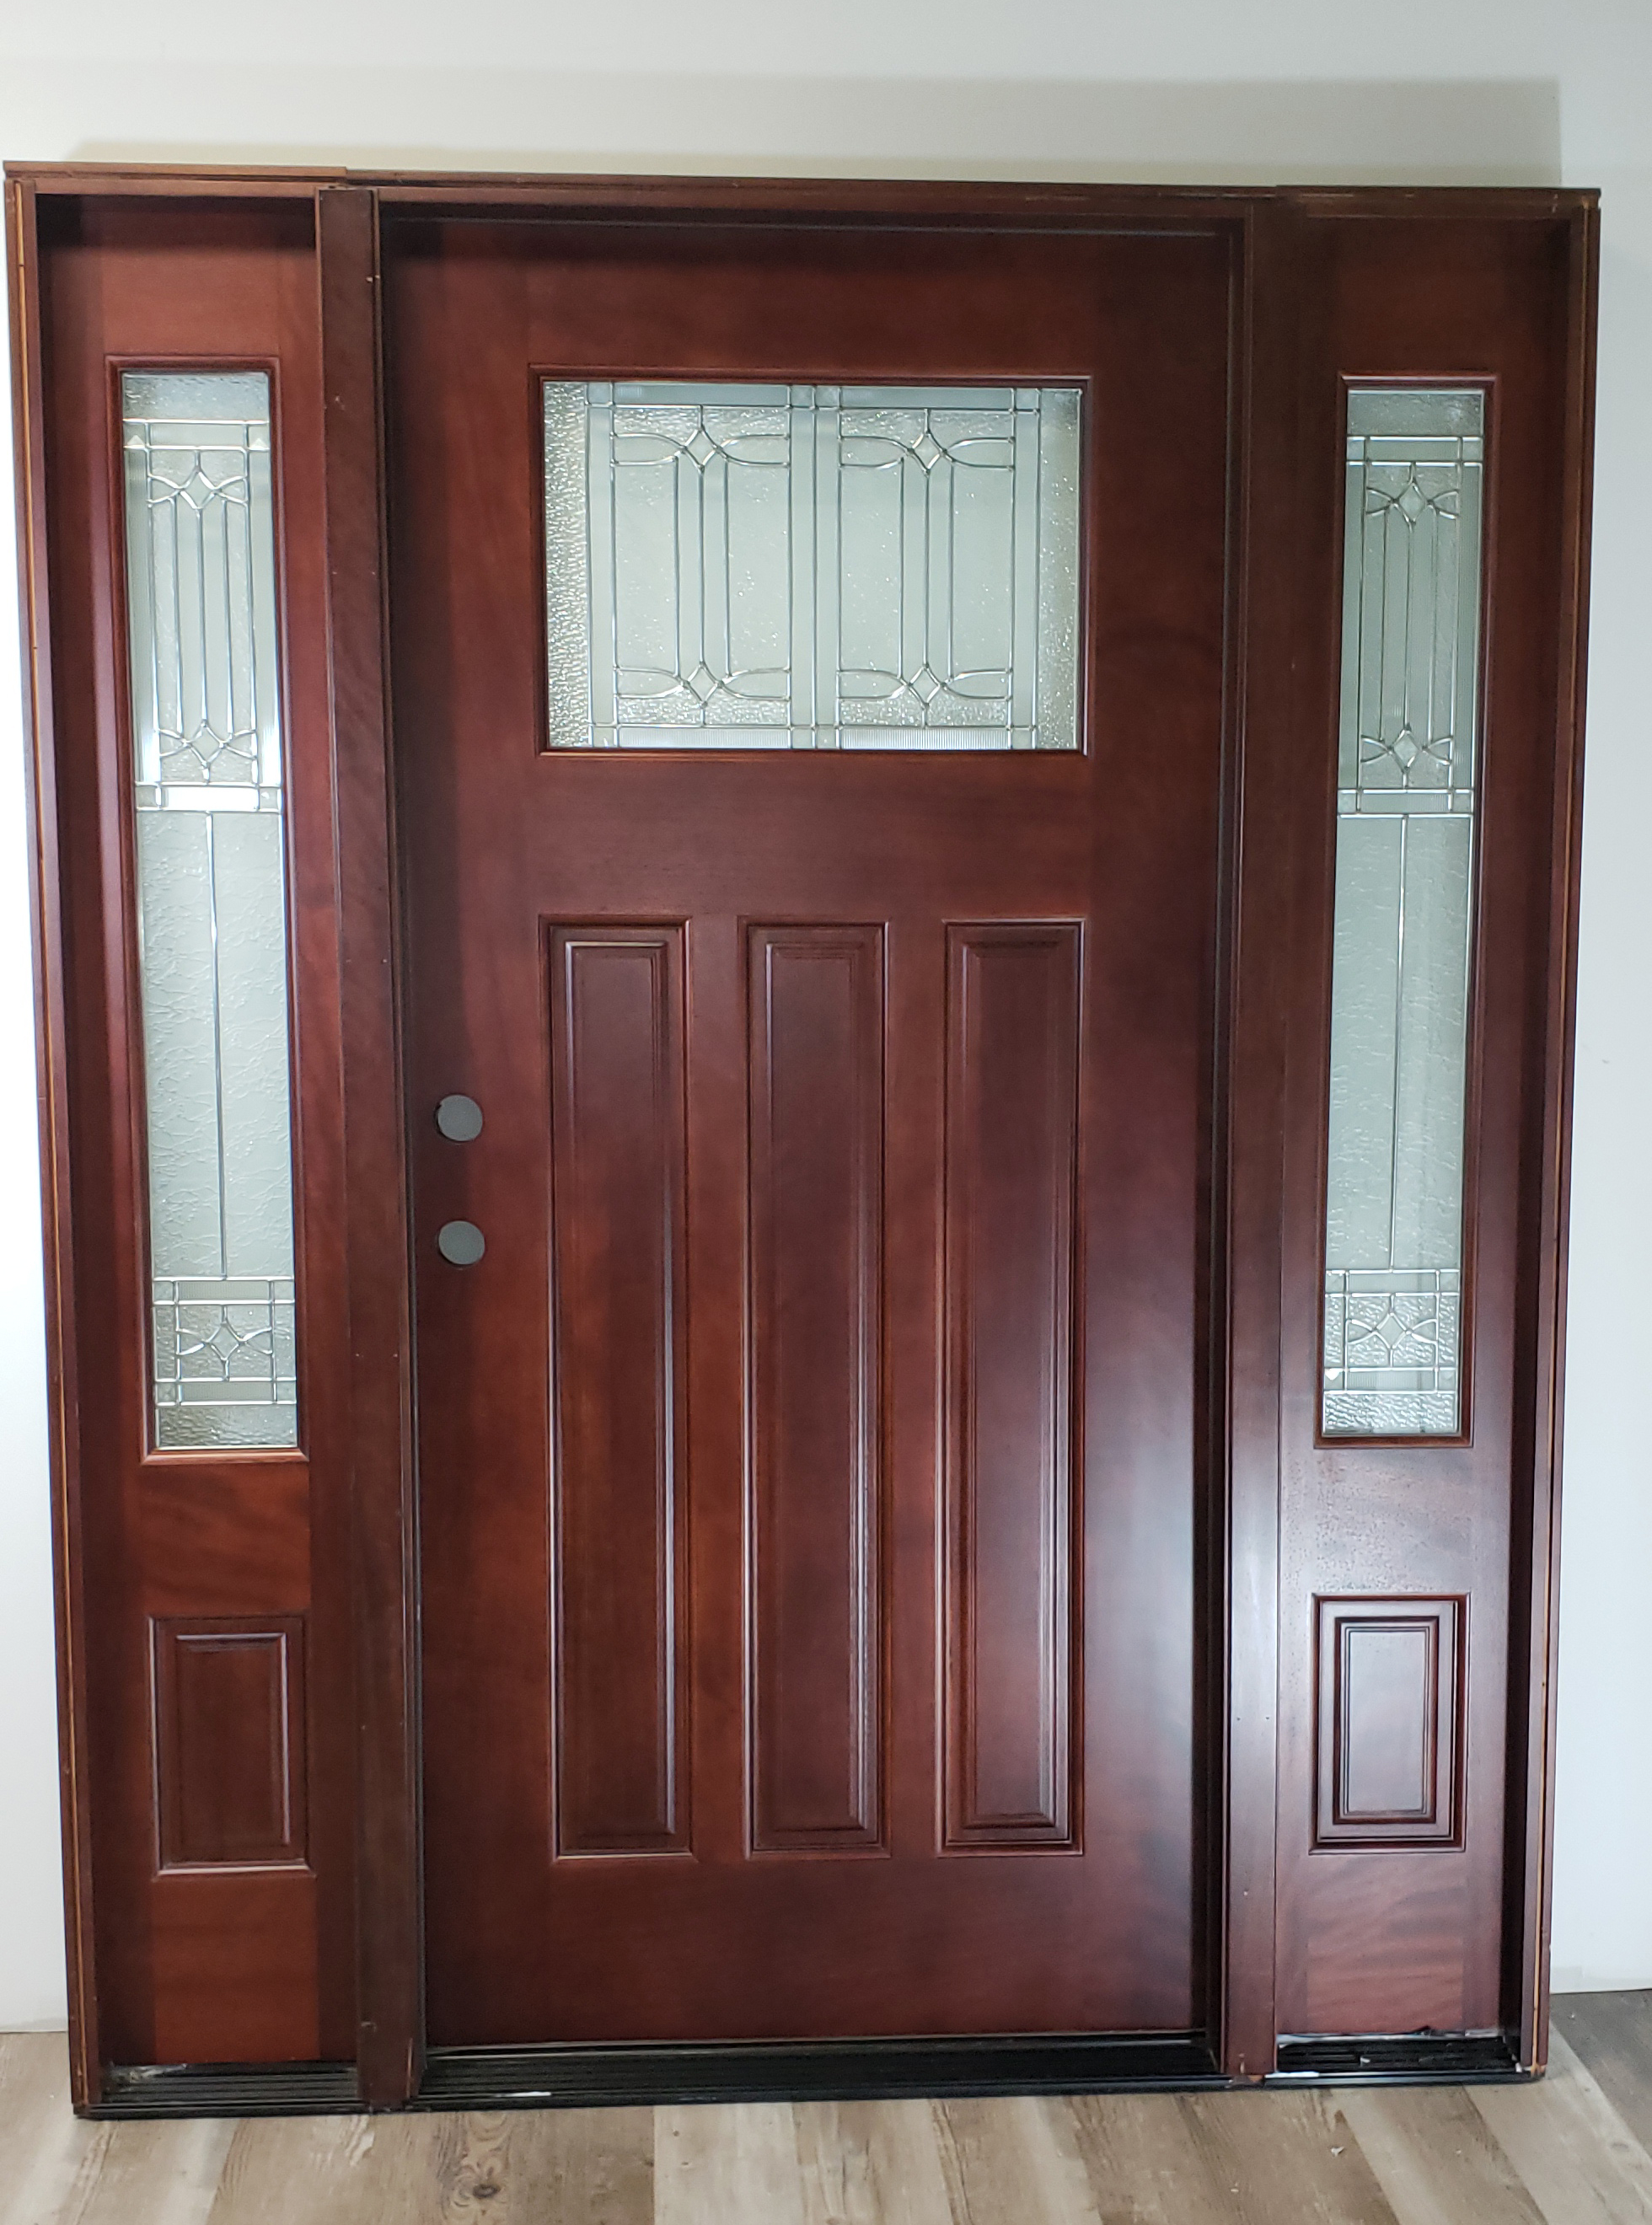 wood-pacific-entry-glass-quarter-sidelights-square-exterior-door-mahogany-finish